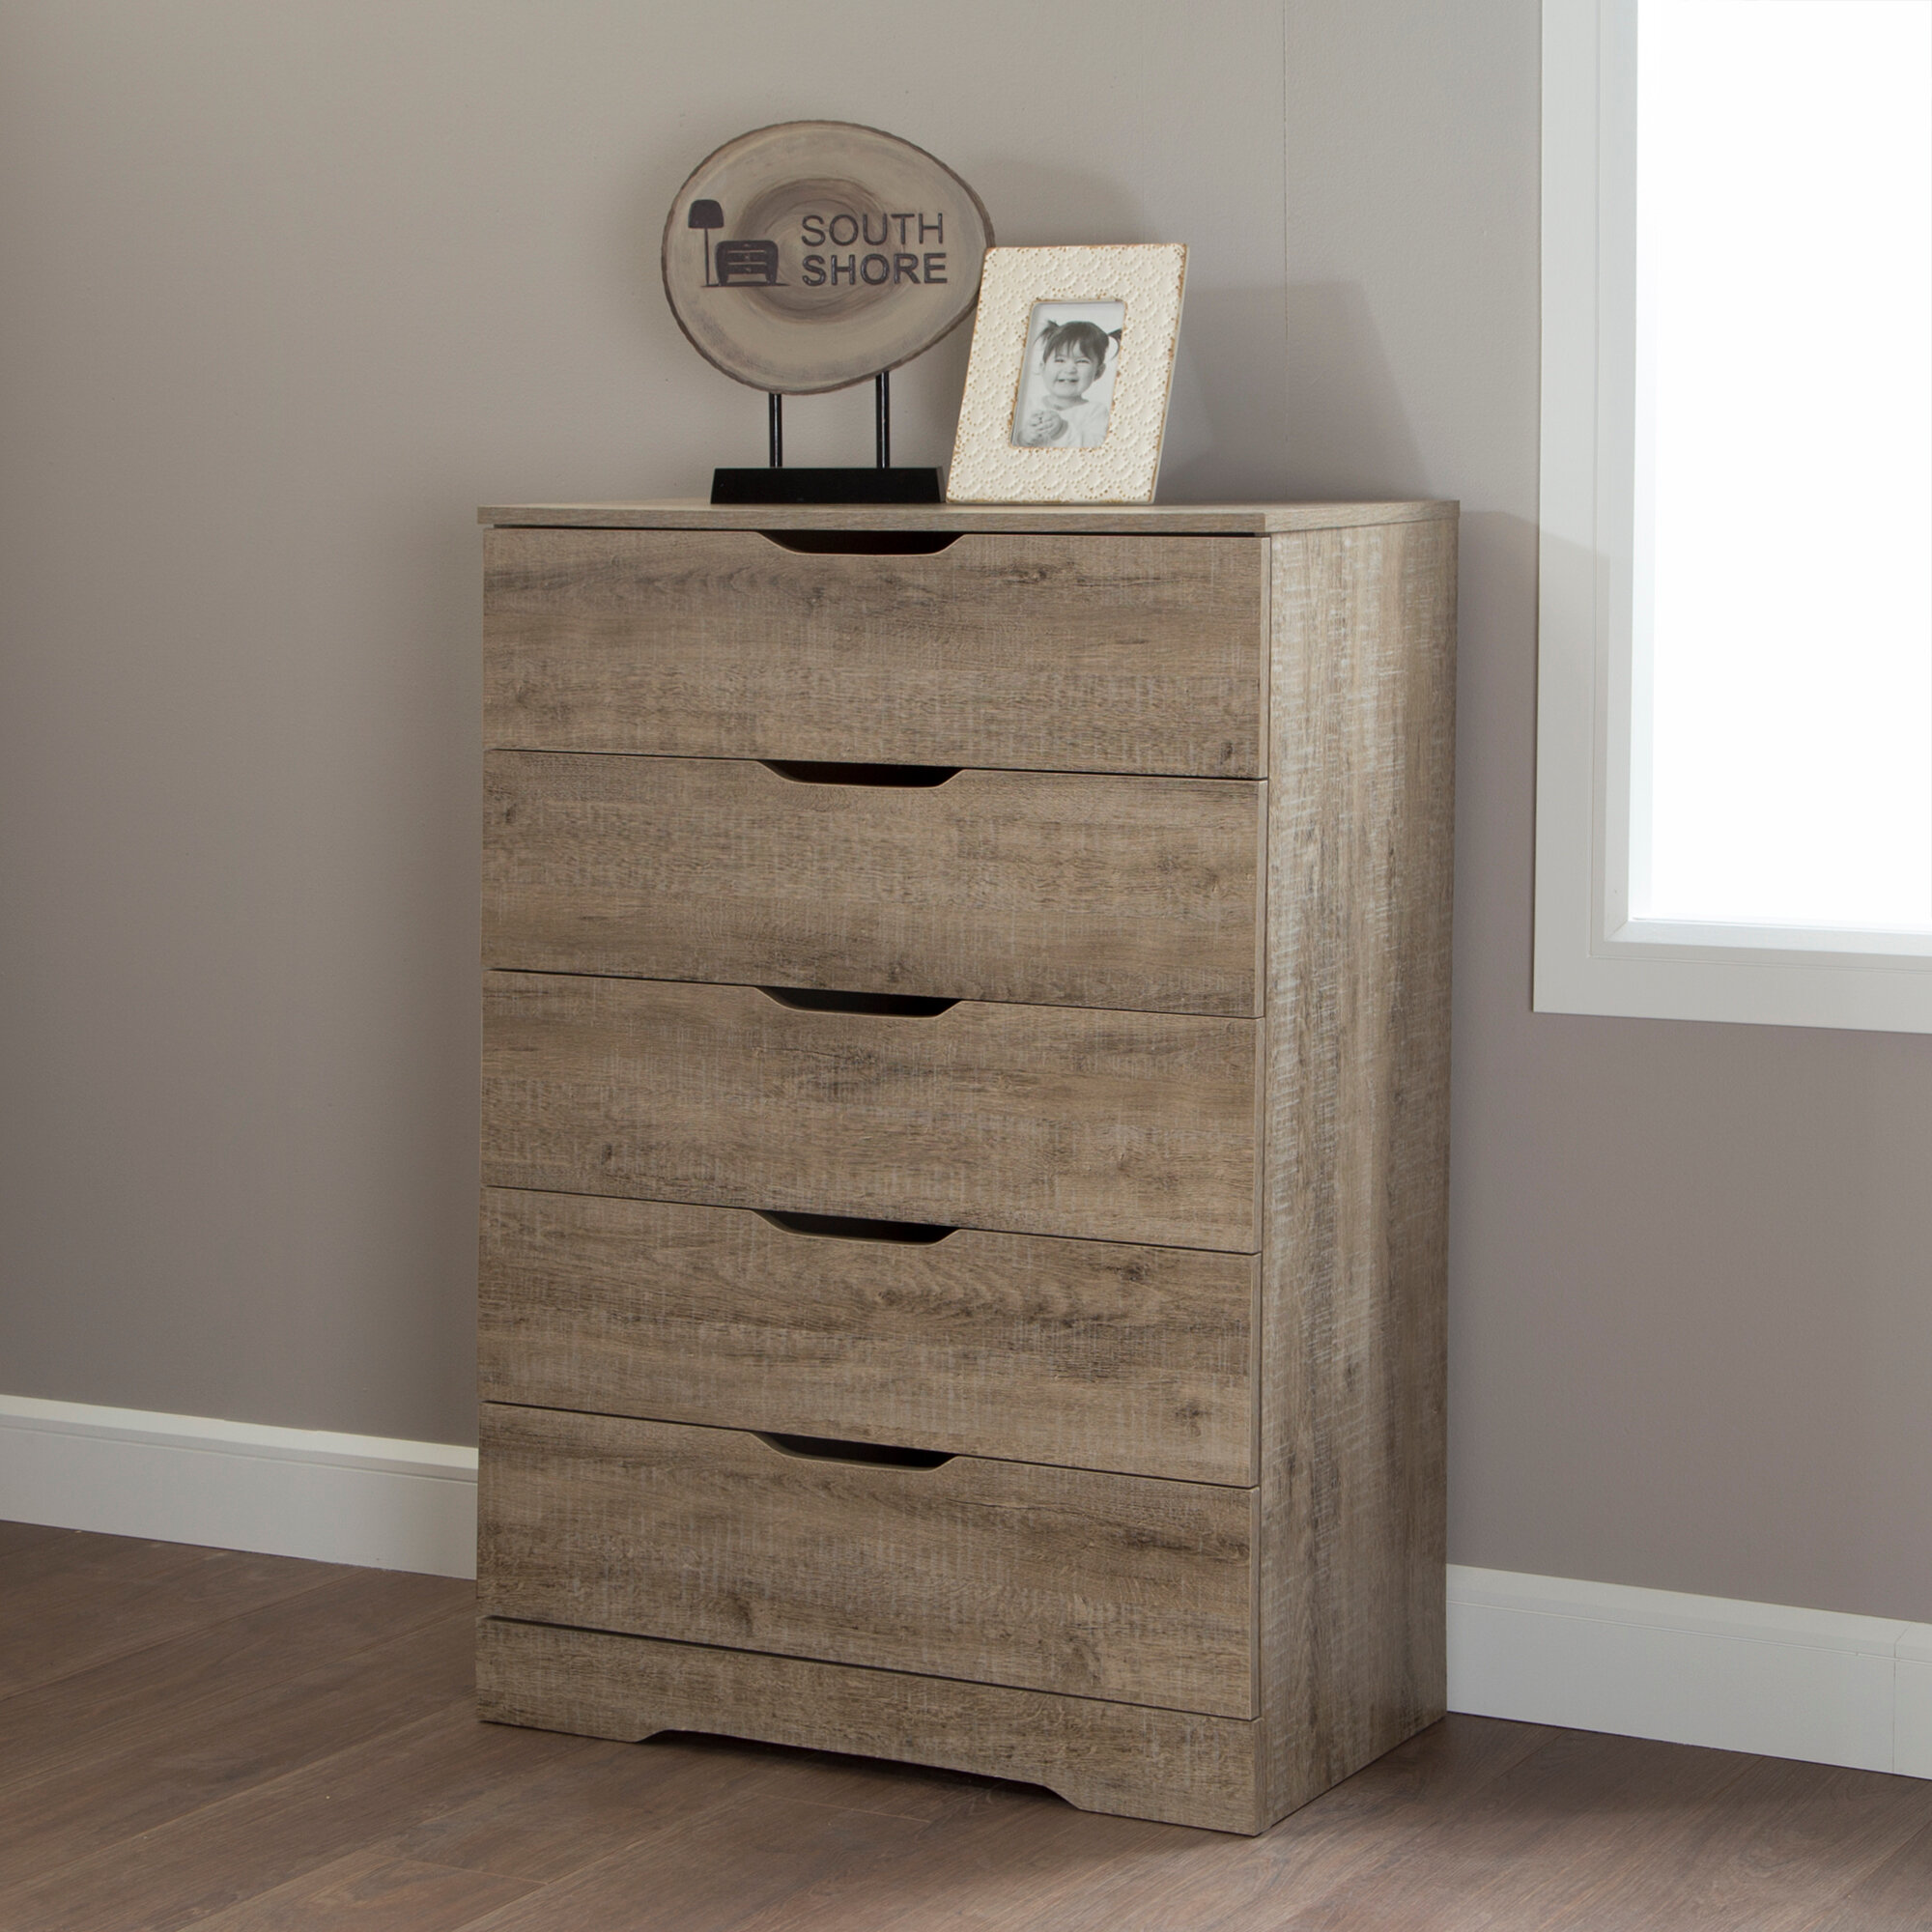 Commodes South Shore Forme Commode Standard Verticale Wayfair Ca